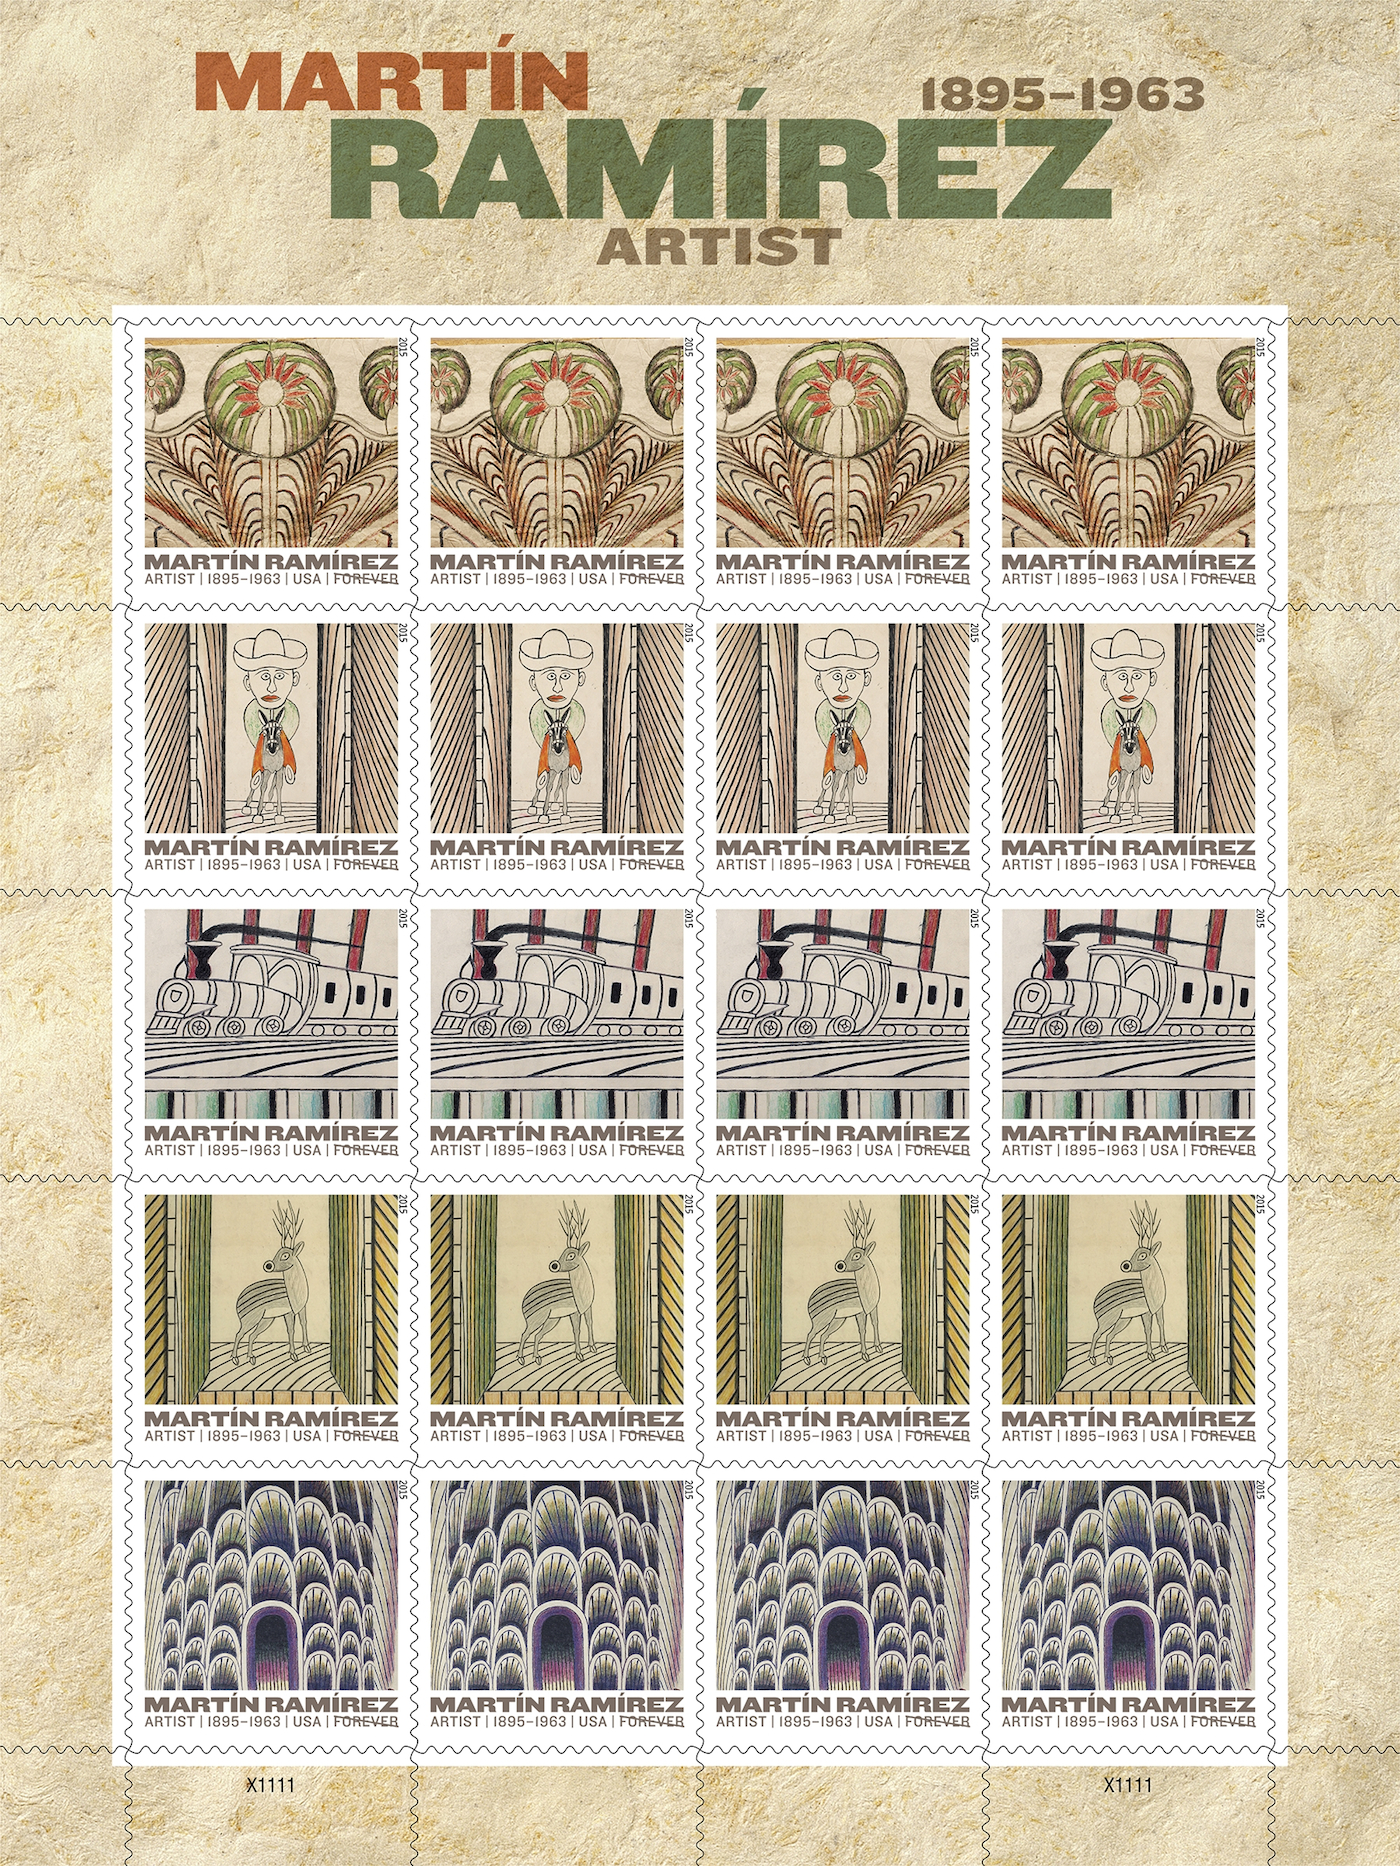 image about Printable Postage Stamps identify The Postal Support Is Printing Martín Ramírez Stamps -ARTnews